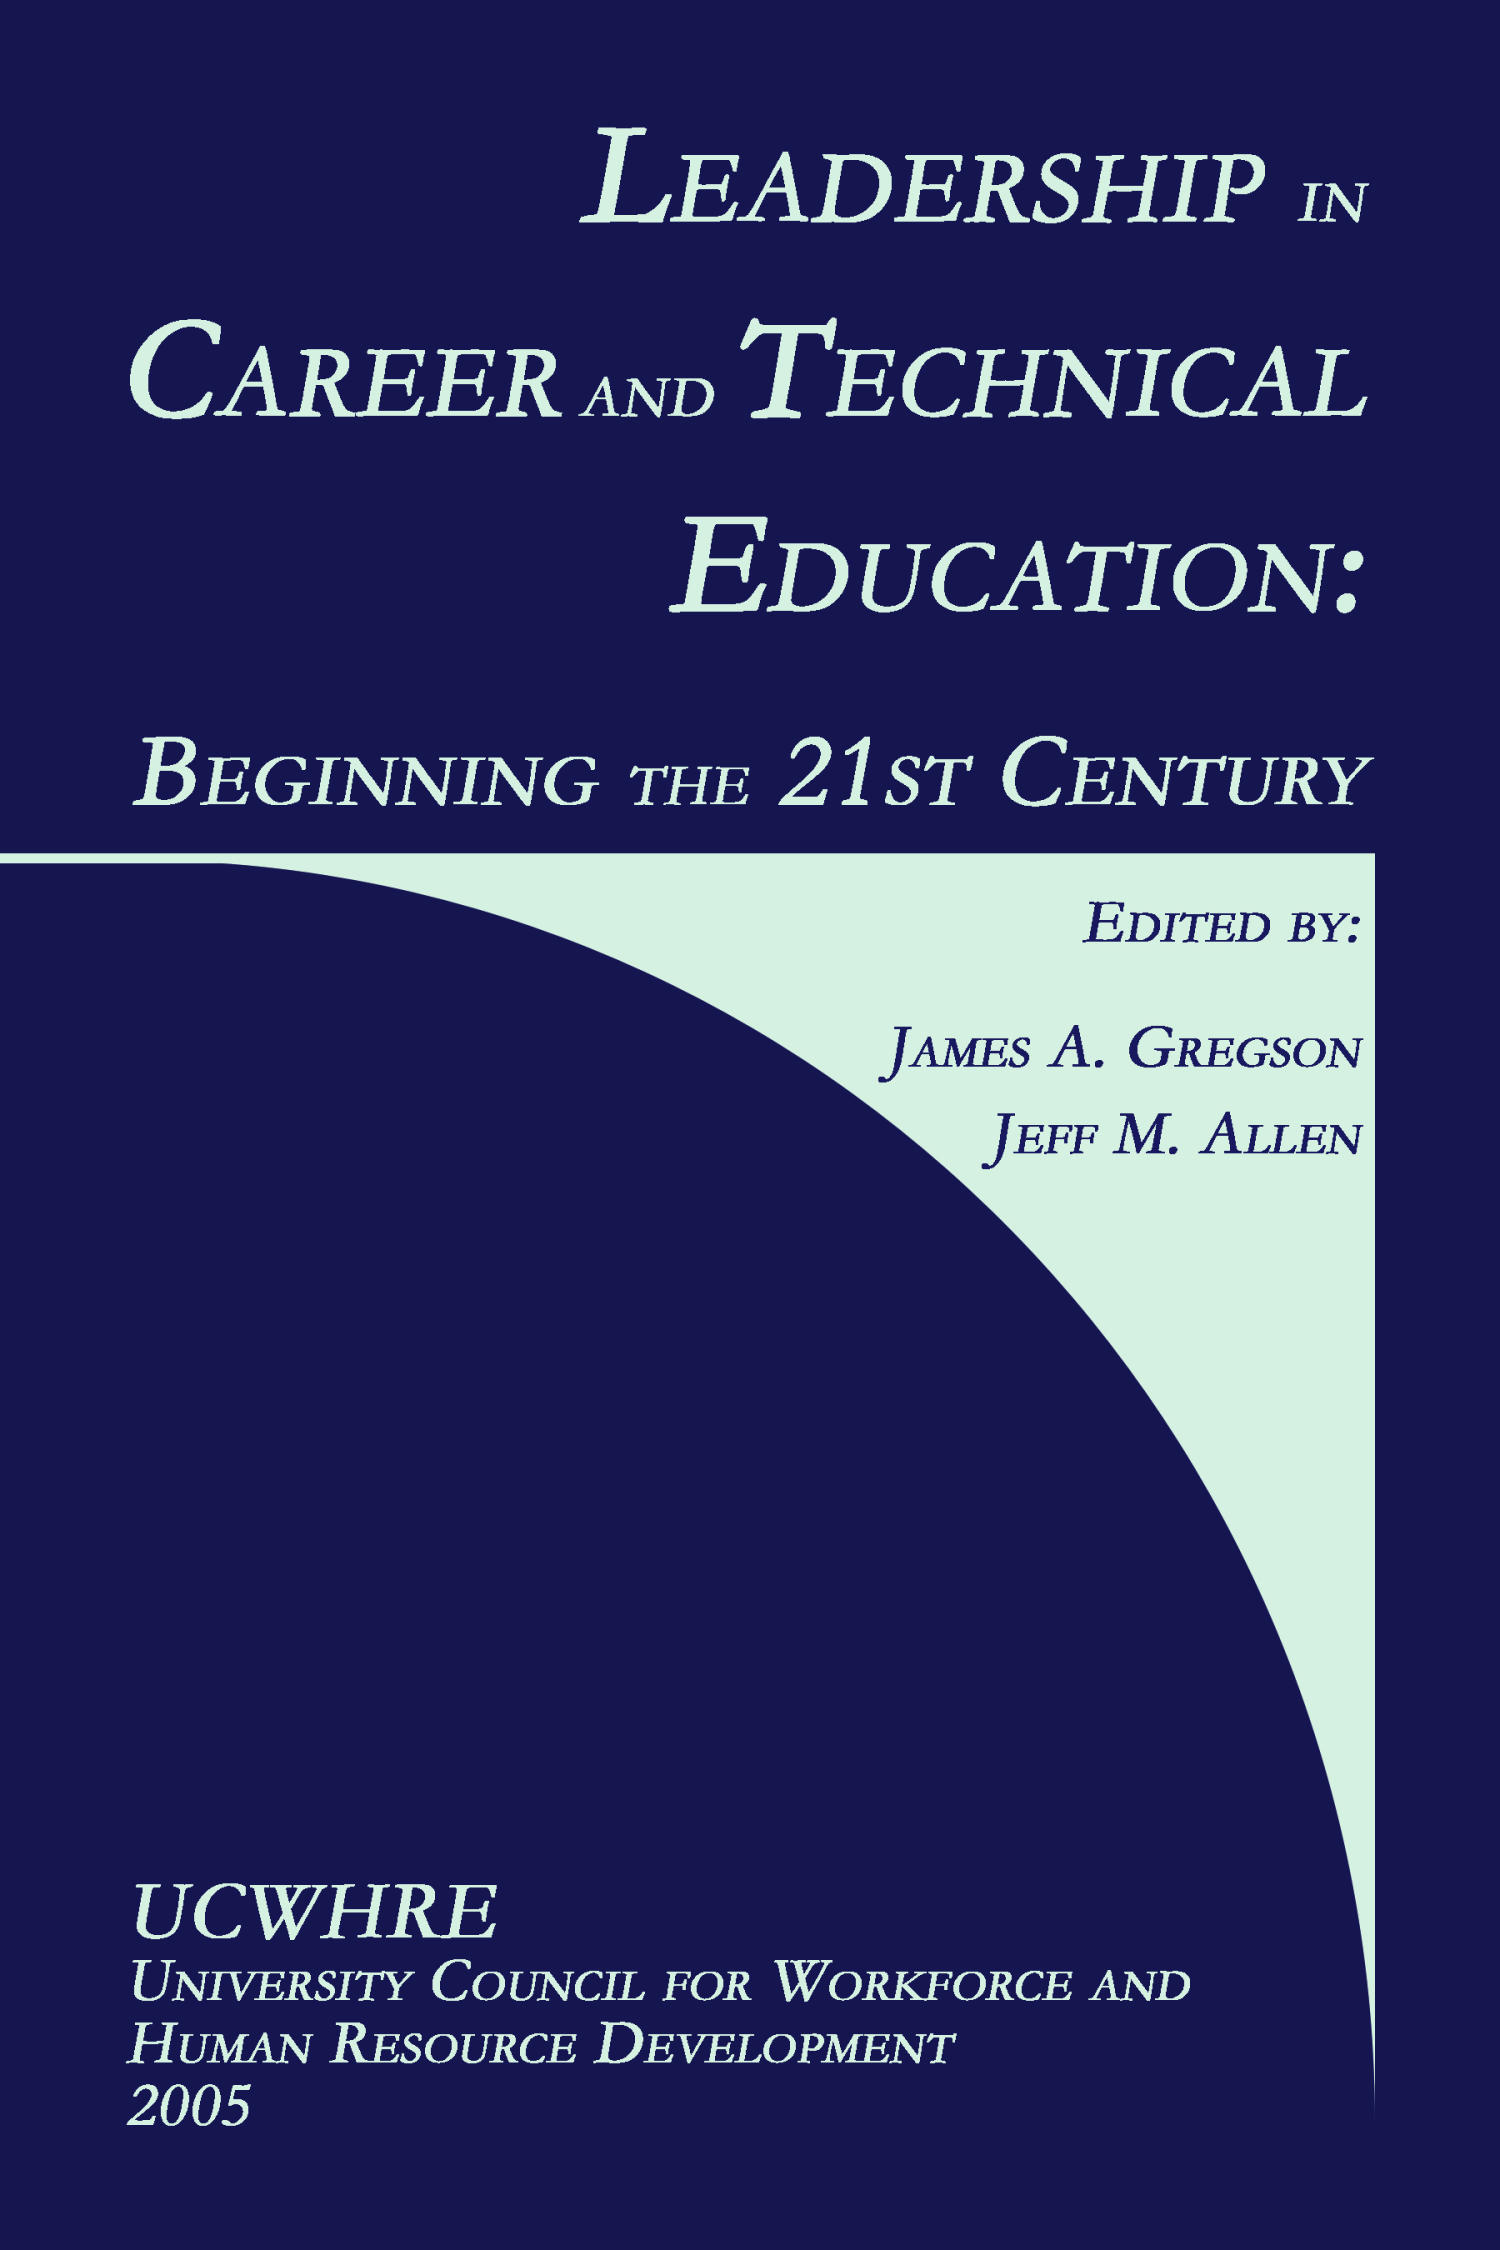 Leadership in Career and Technical Education: Beginning the 21st Century                                                                                                      Front Cover